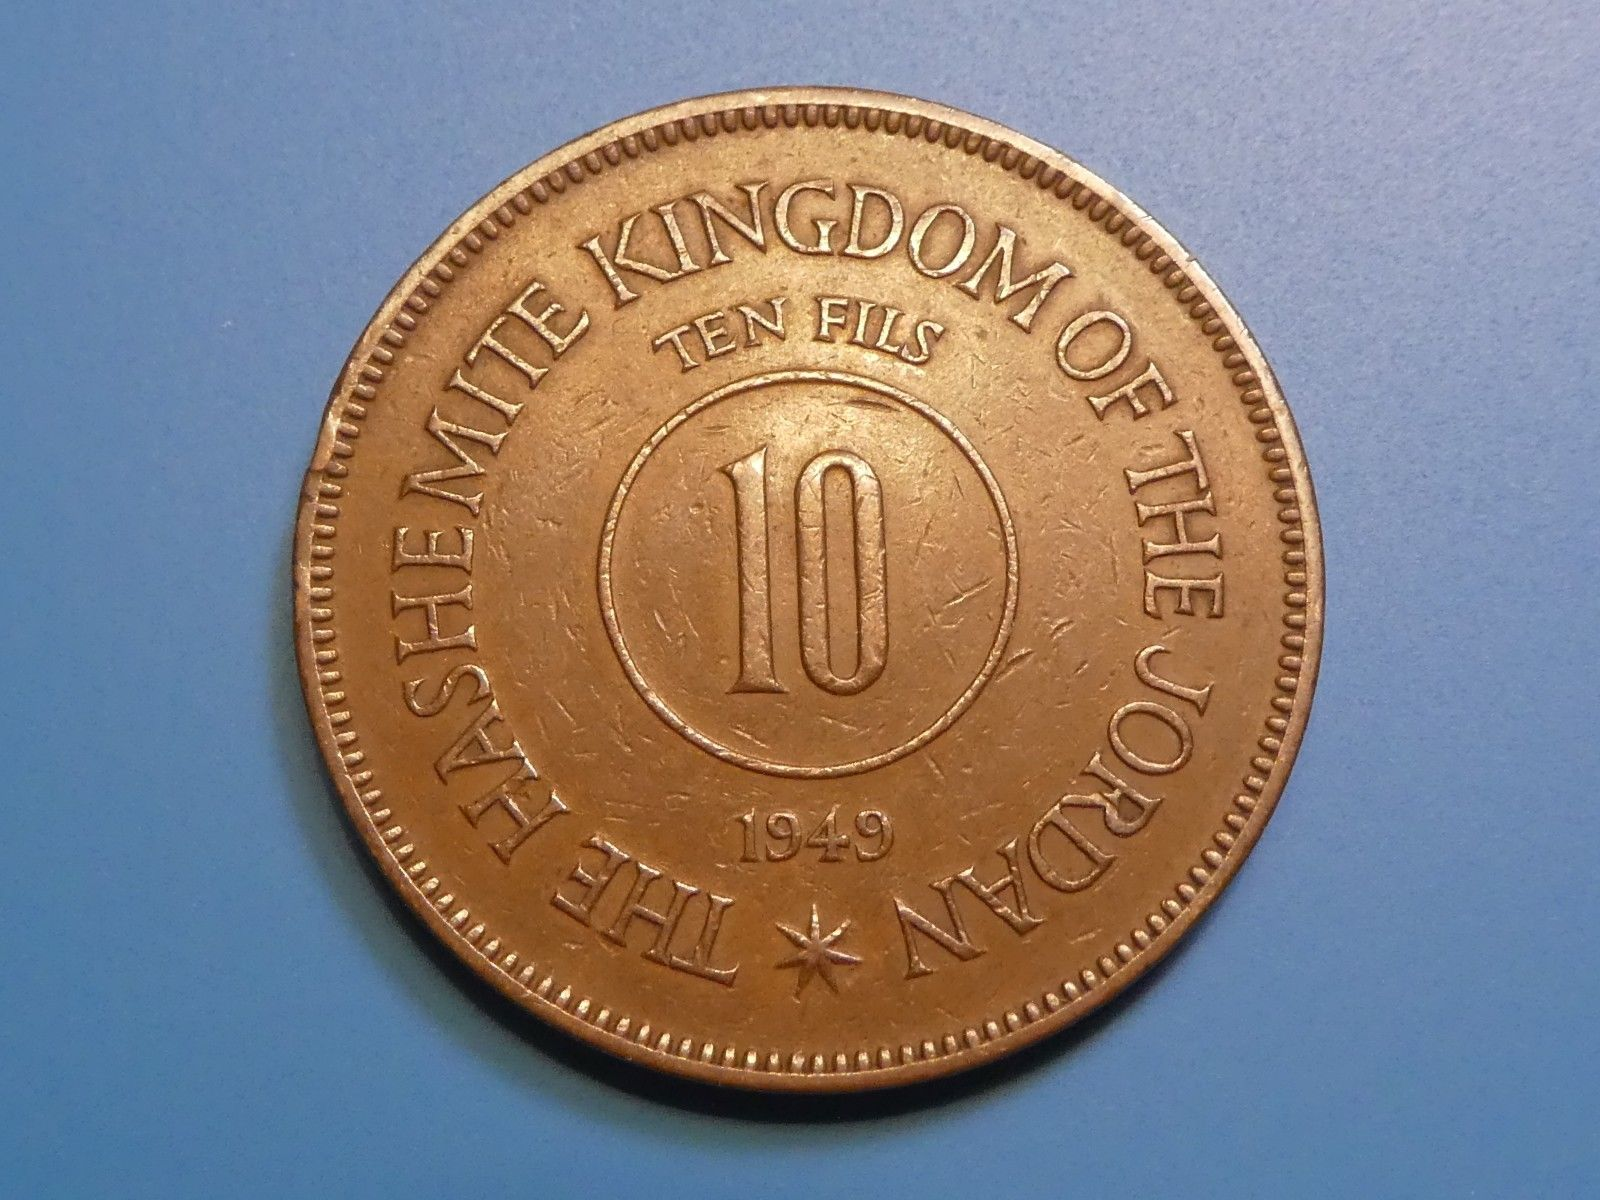 Other Coins of the World